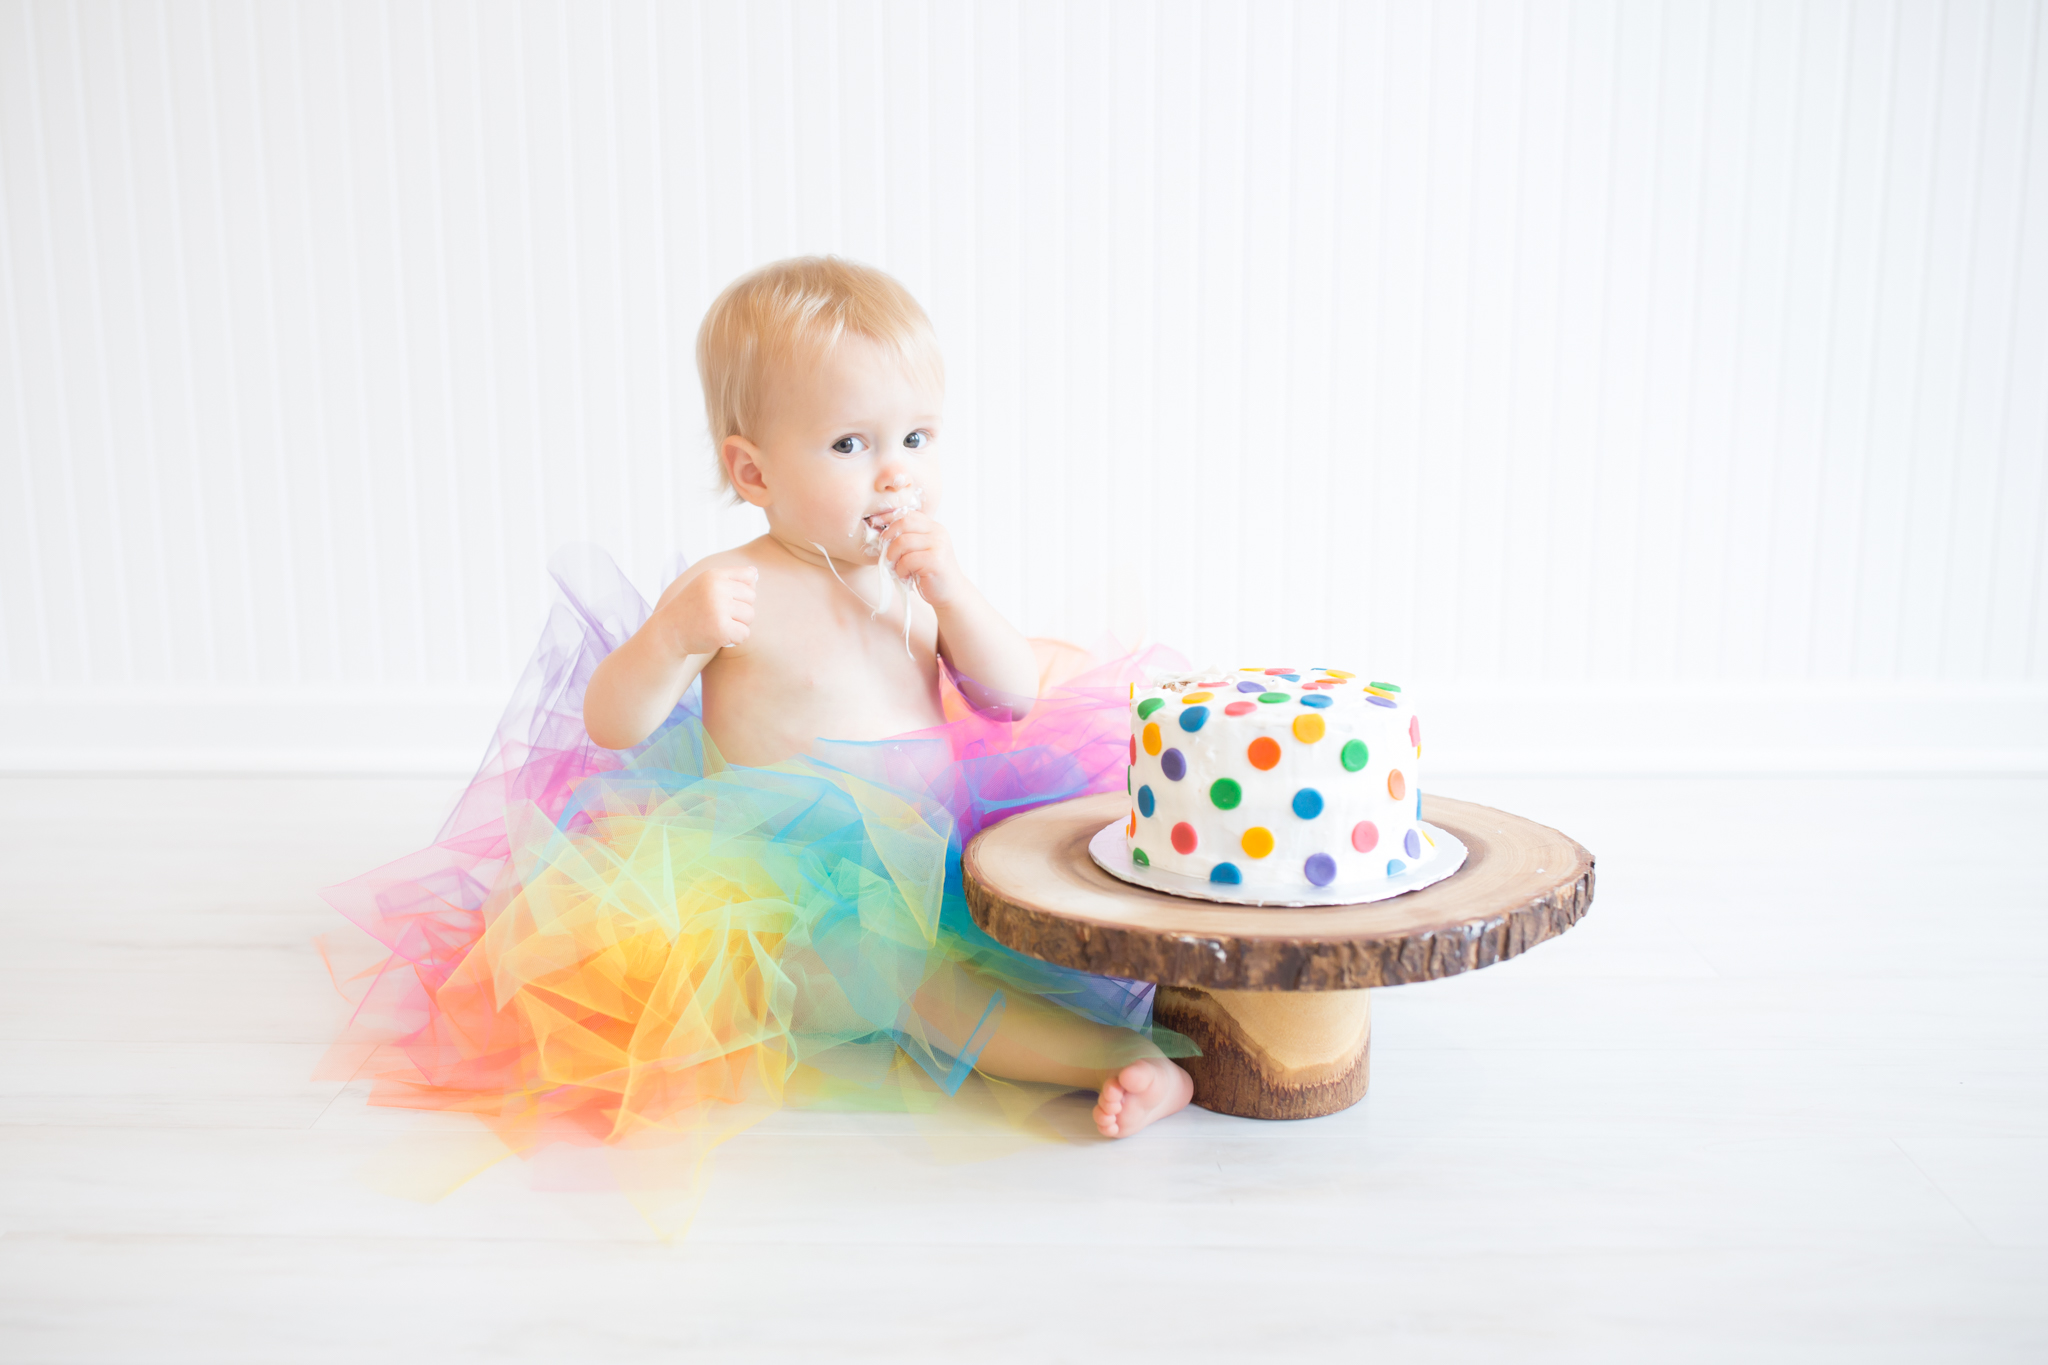 Milestone cake smash Newborn Studio Session | Cara Peterson Photography Rockford IL-11.jpg